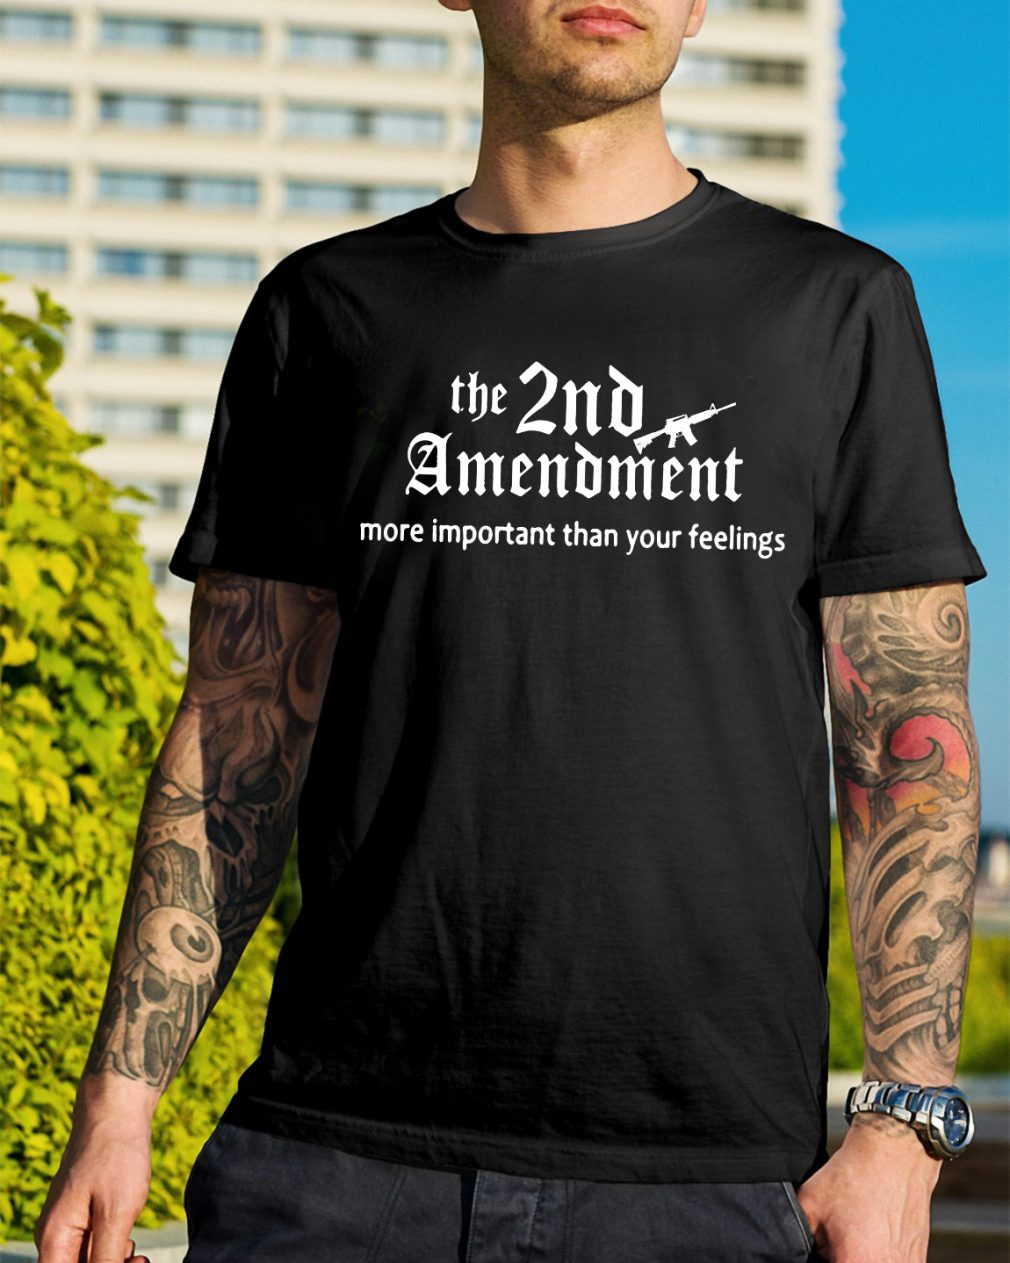 The 2nd Amendment more important than your feelings shirt